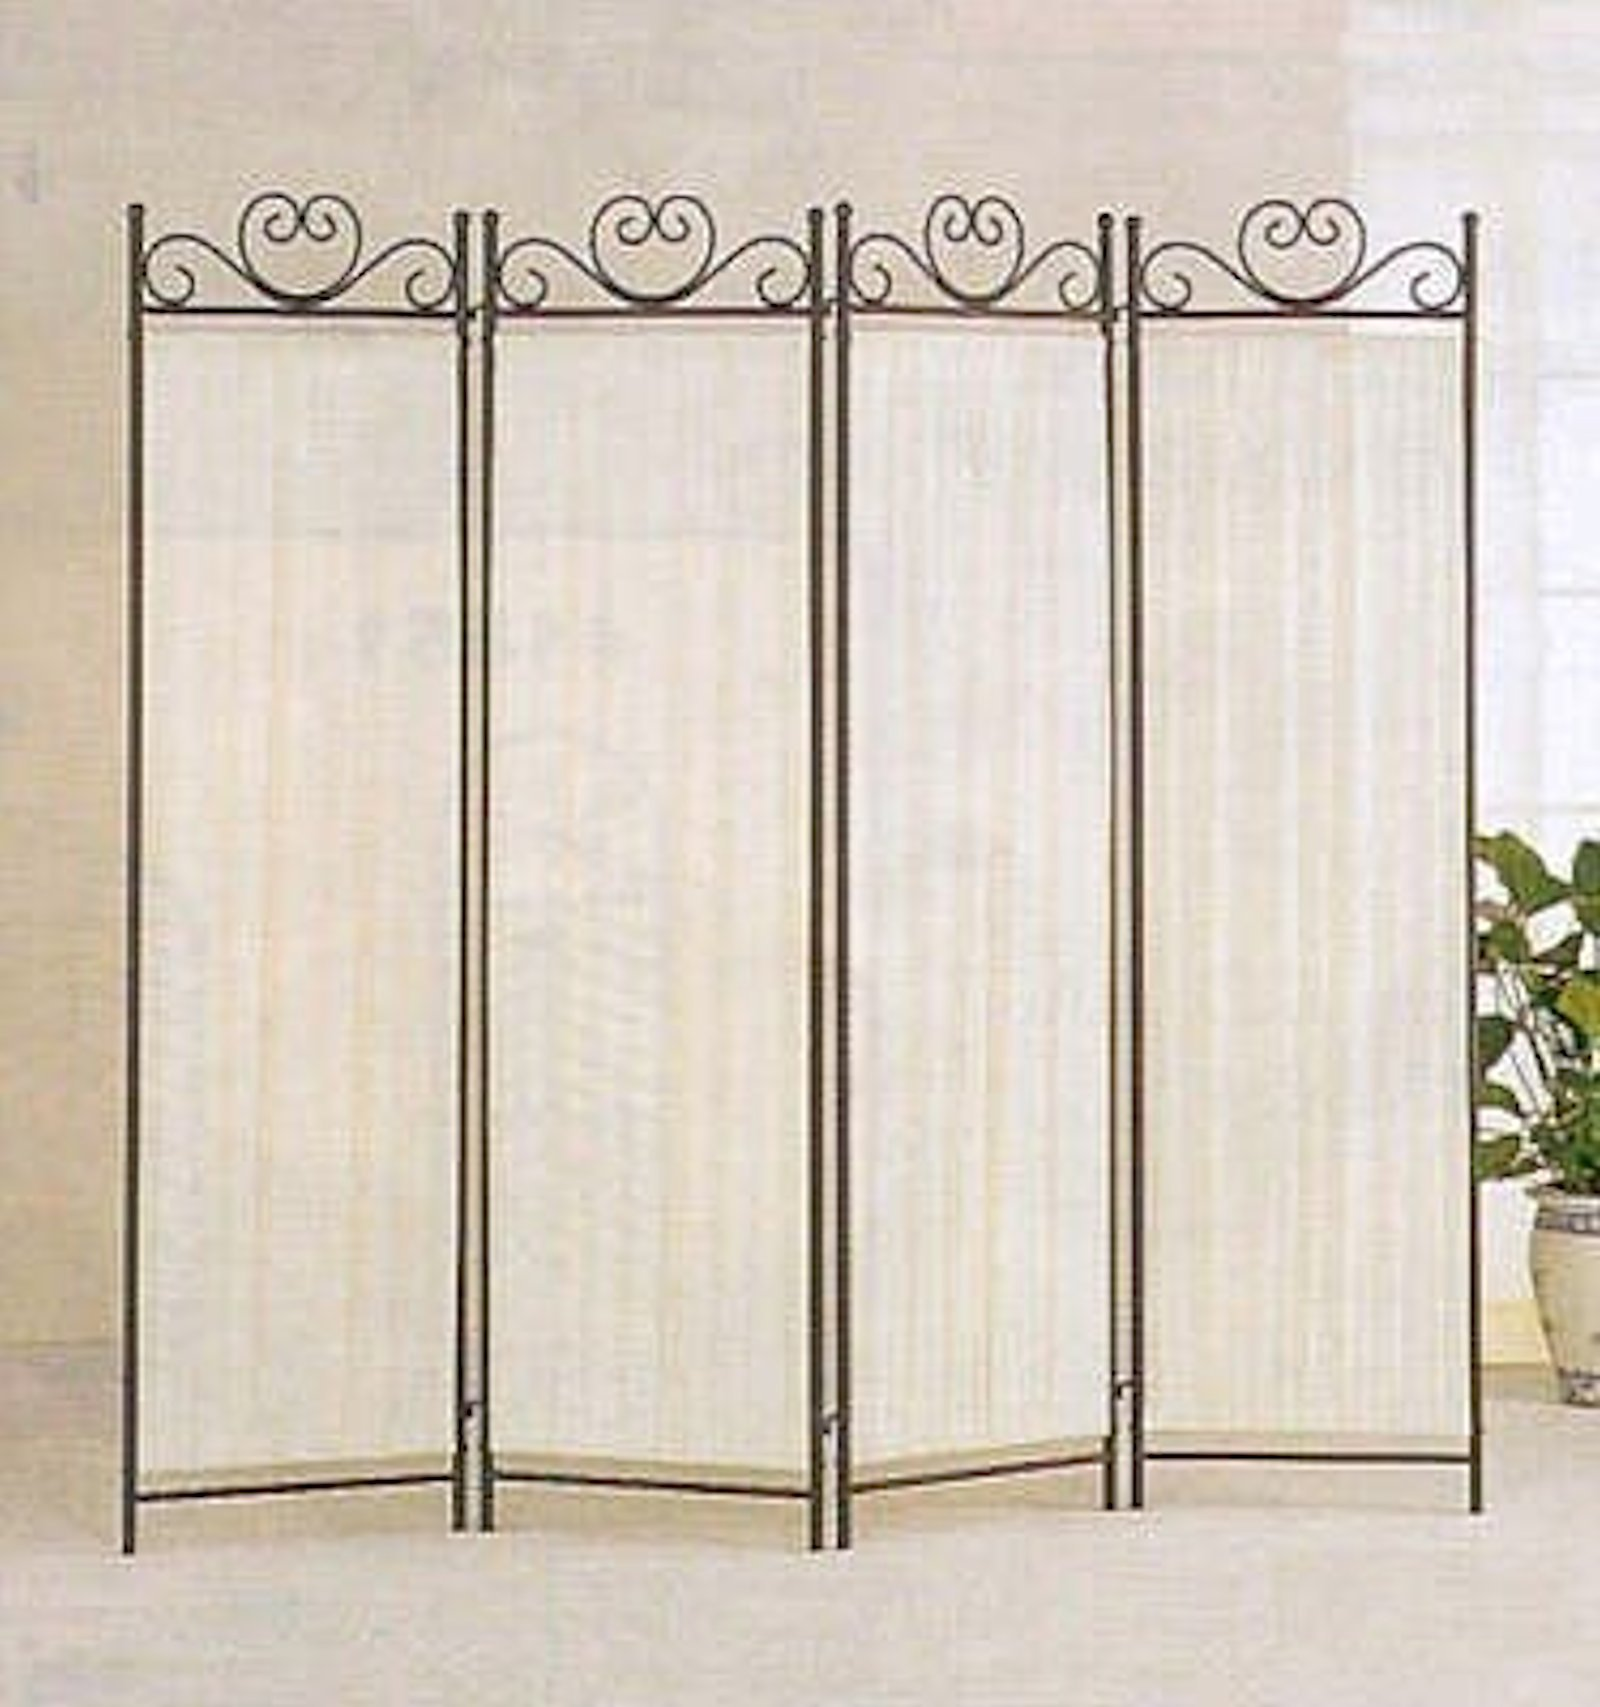 Cheap Photo Frame Screen Room Divider, find Photo Frame Screen Room ...